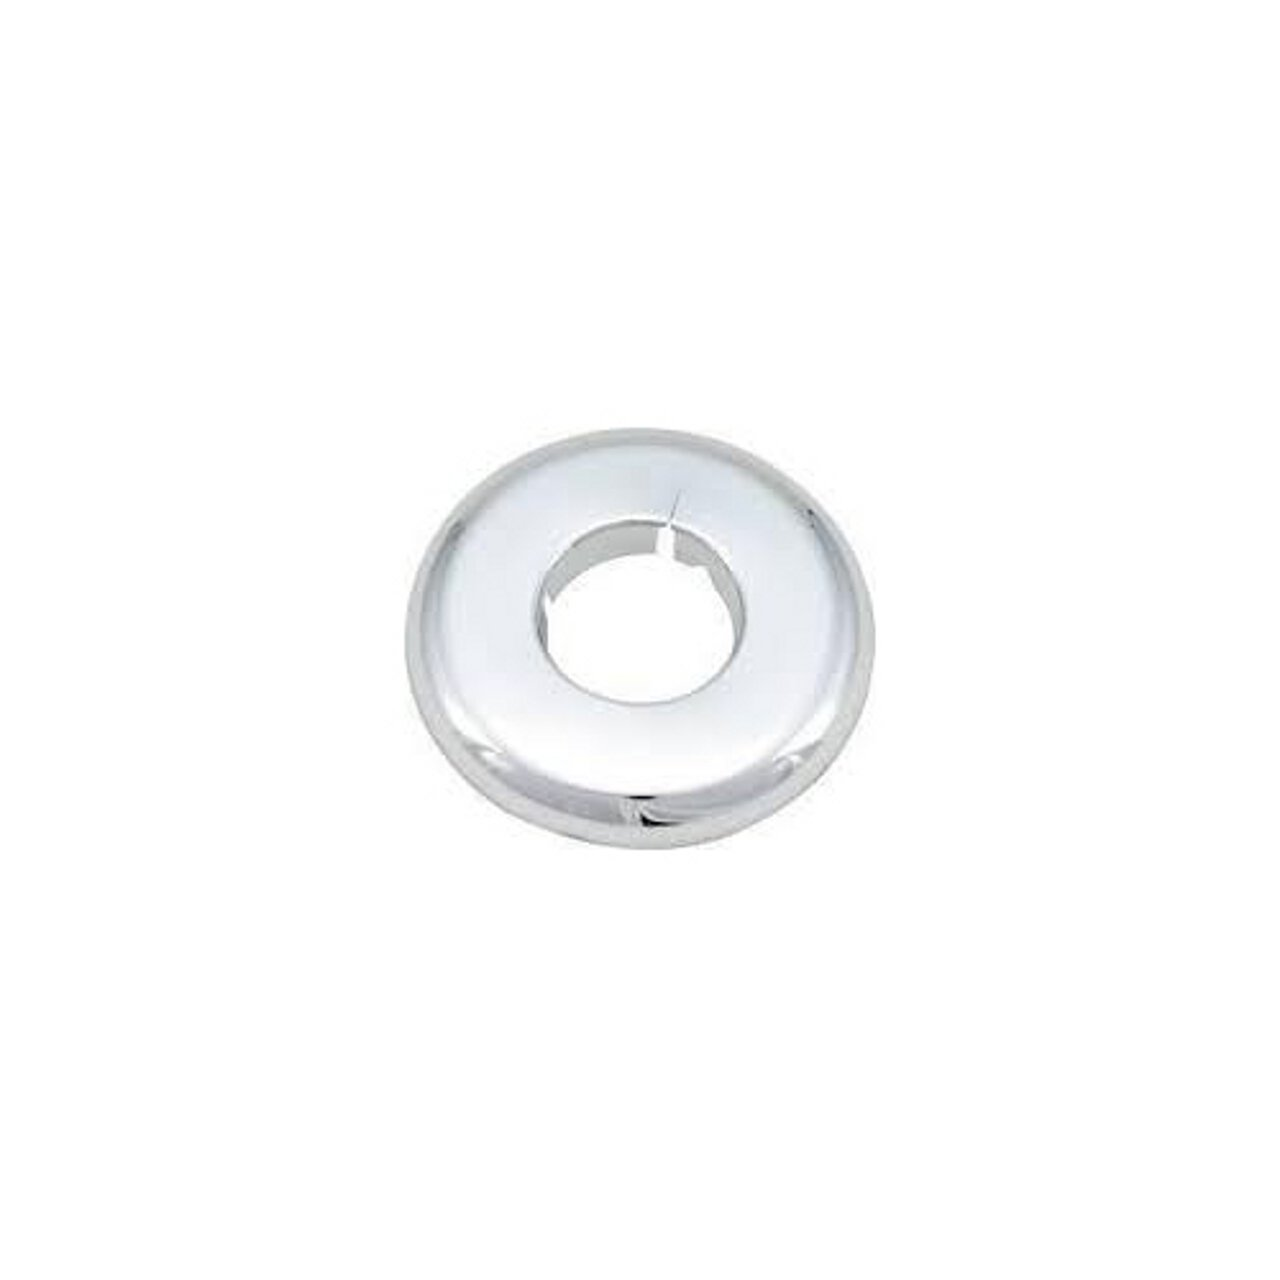 Pasco 2857 3/4-Inch Plastic Floor and Ceiling Plate